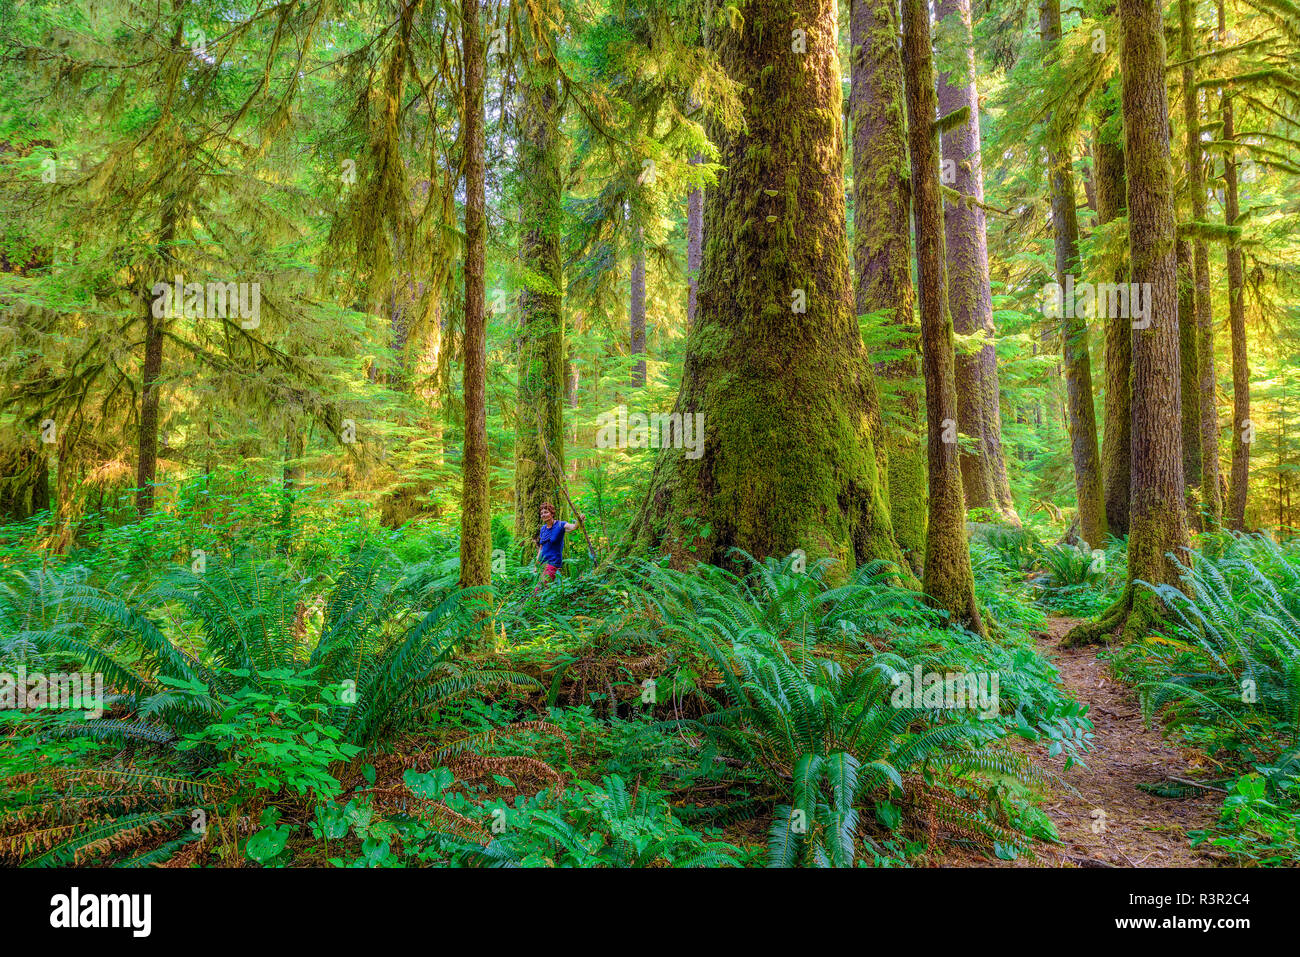 Sitka Spruce (Picea sitchensis) in the rainforest of Vancouver Island. Some rare specimens reach 100 m high - 90% of the rainforest of the island has been exploited and the beautiful trees are exceptional - Carmanah Walbran Provincial Park - Vancouver Island - British Columbia - Canada Stock Photo